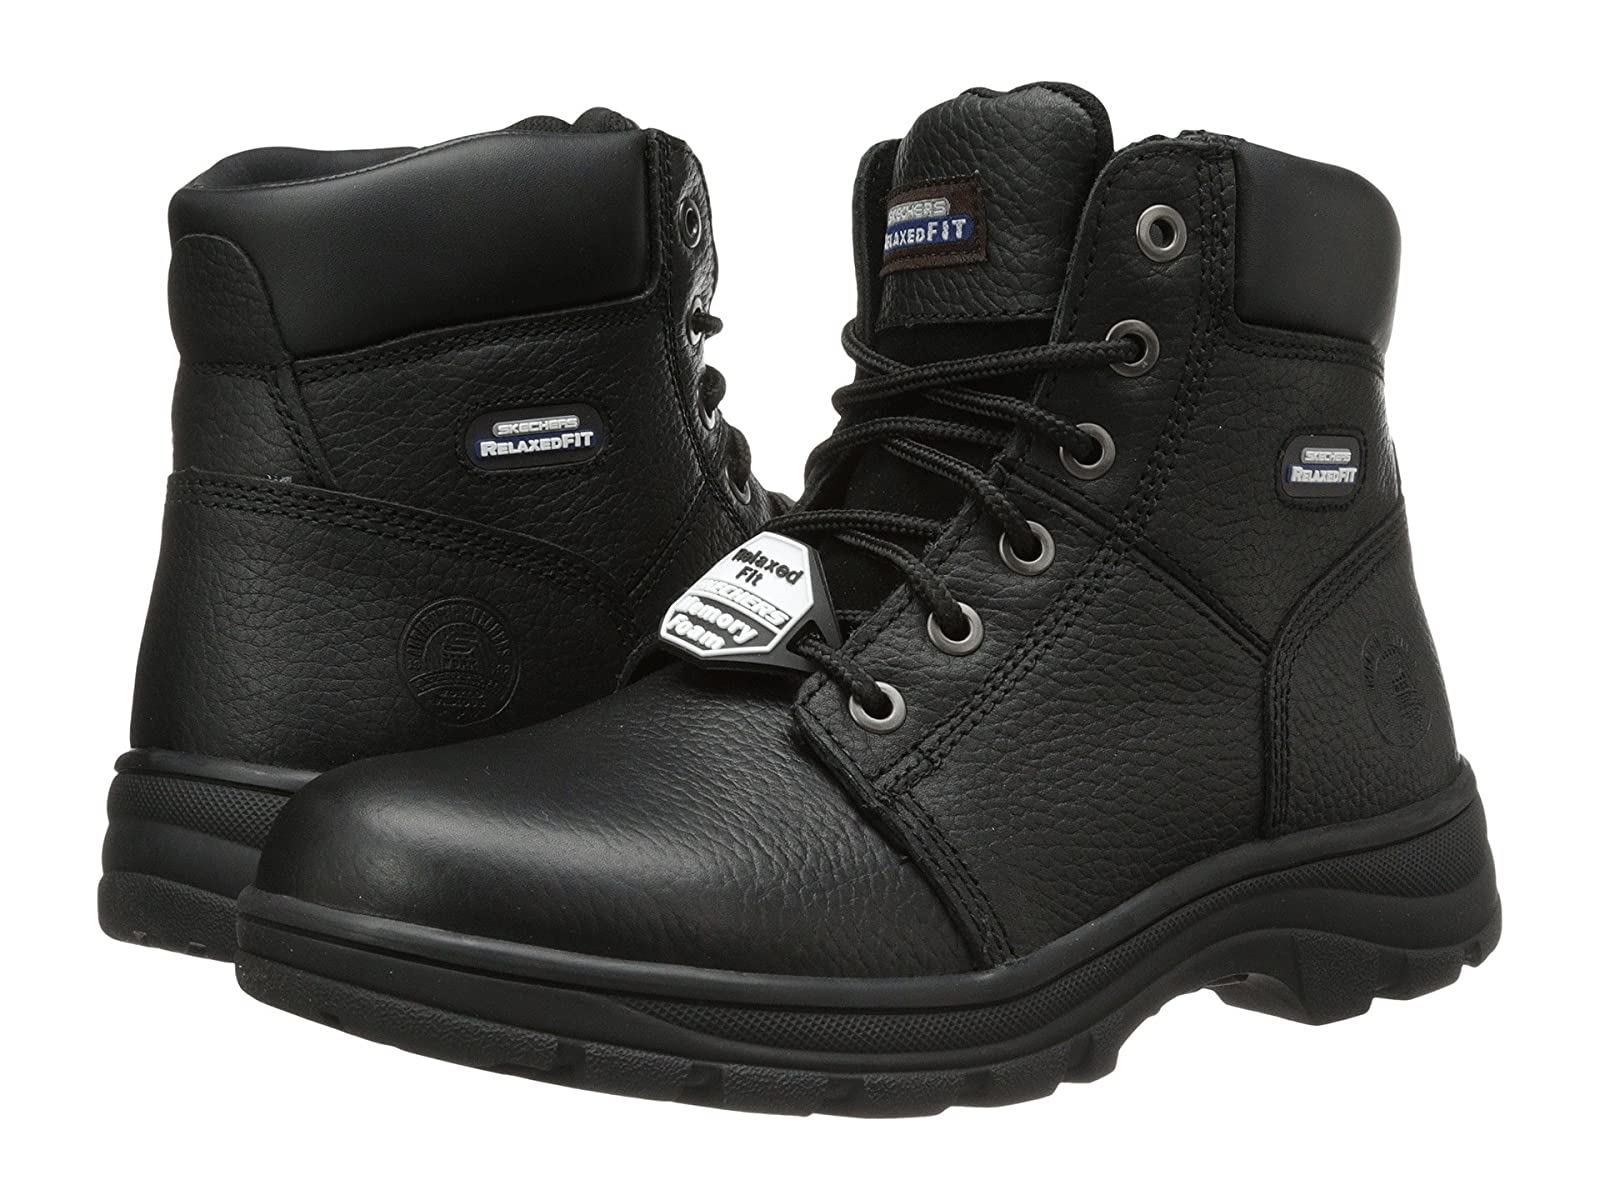 SKECHERS Work Workshire - CondorCheap and distinctive eye-catching shoes